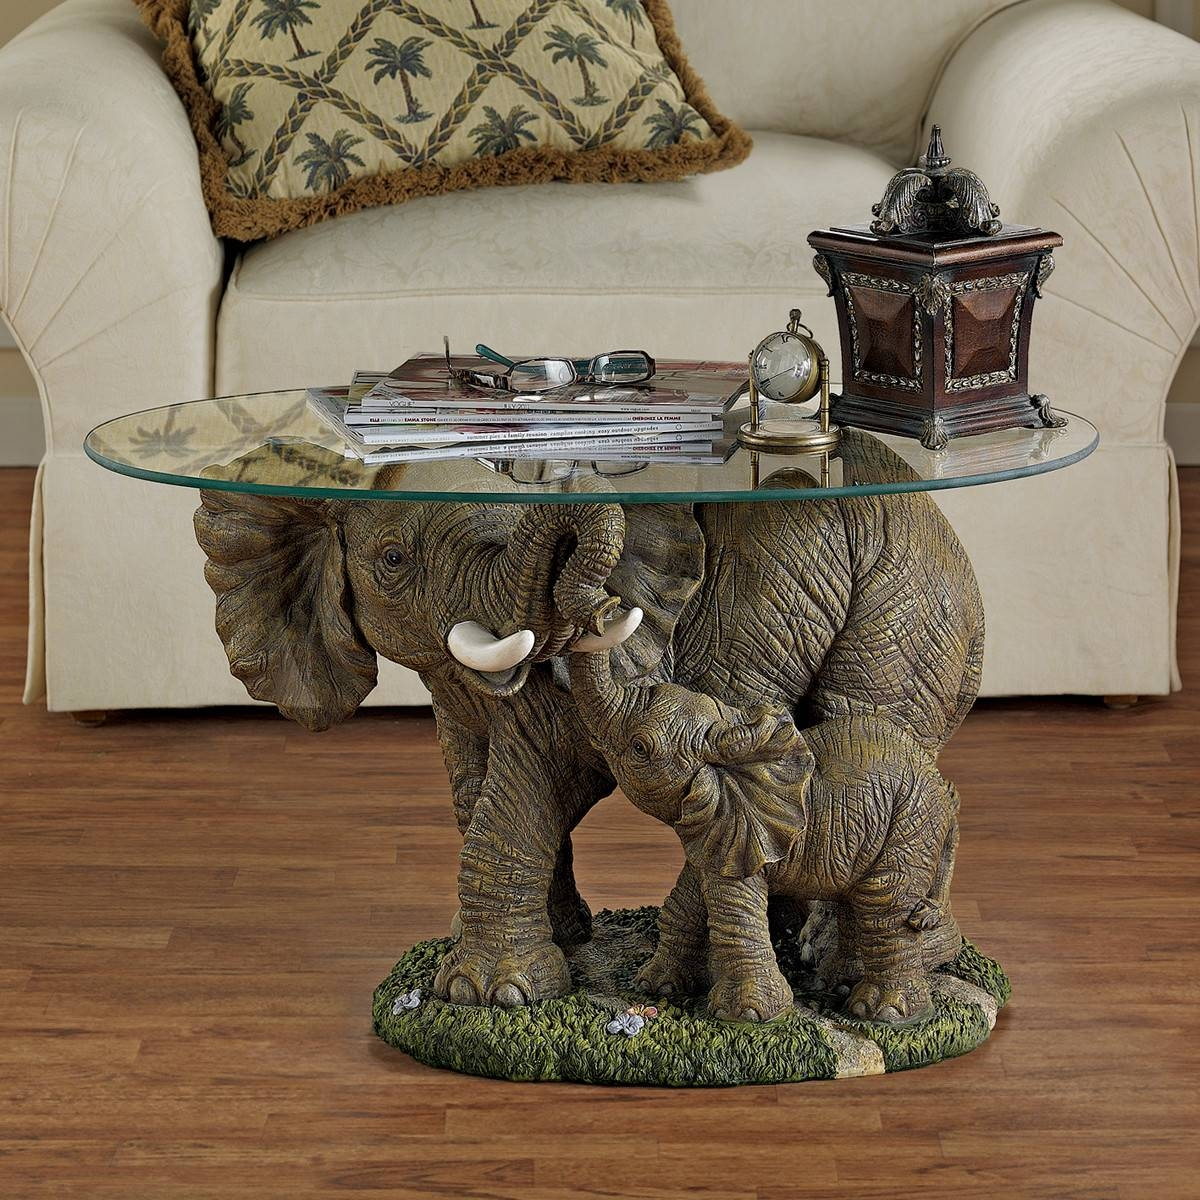 7 Unique Coffee Tables With Sculpture Base - Cute Furniture intended for Elephant Glass Top Coffee Tables (Image 2 of 30)